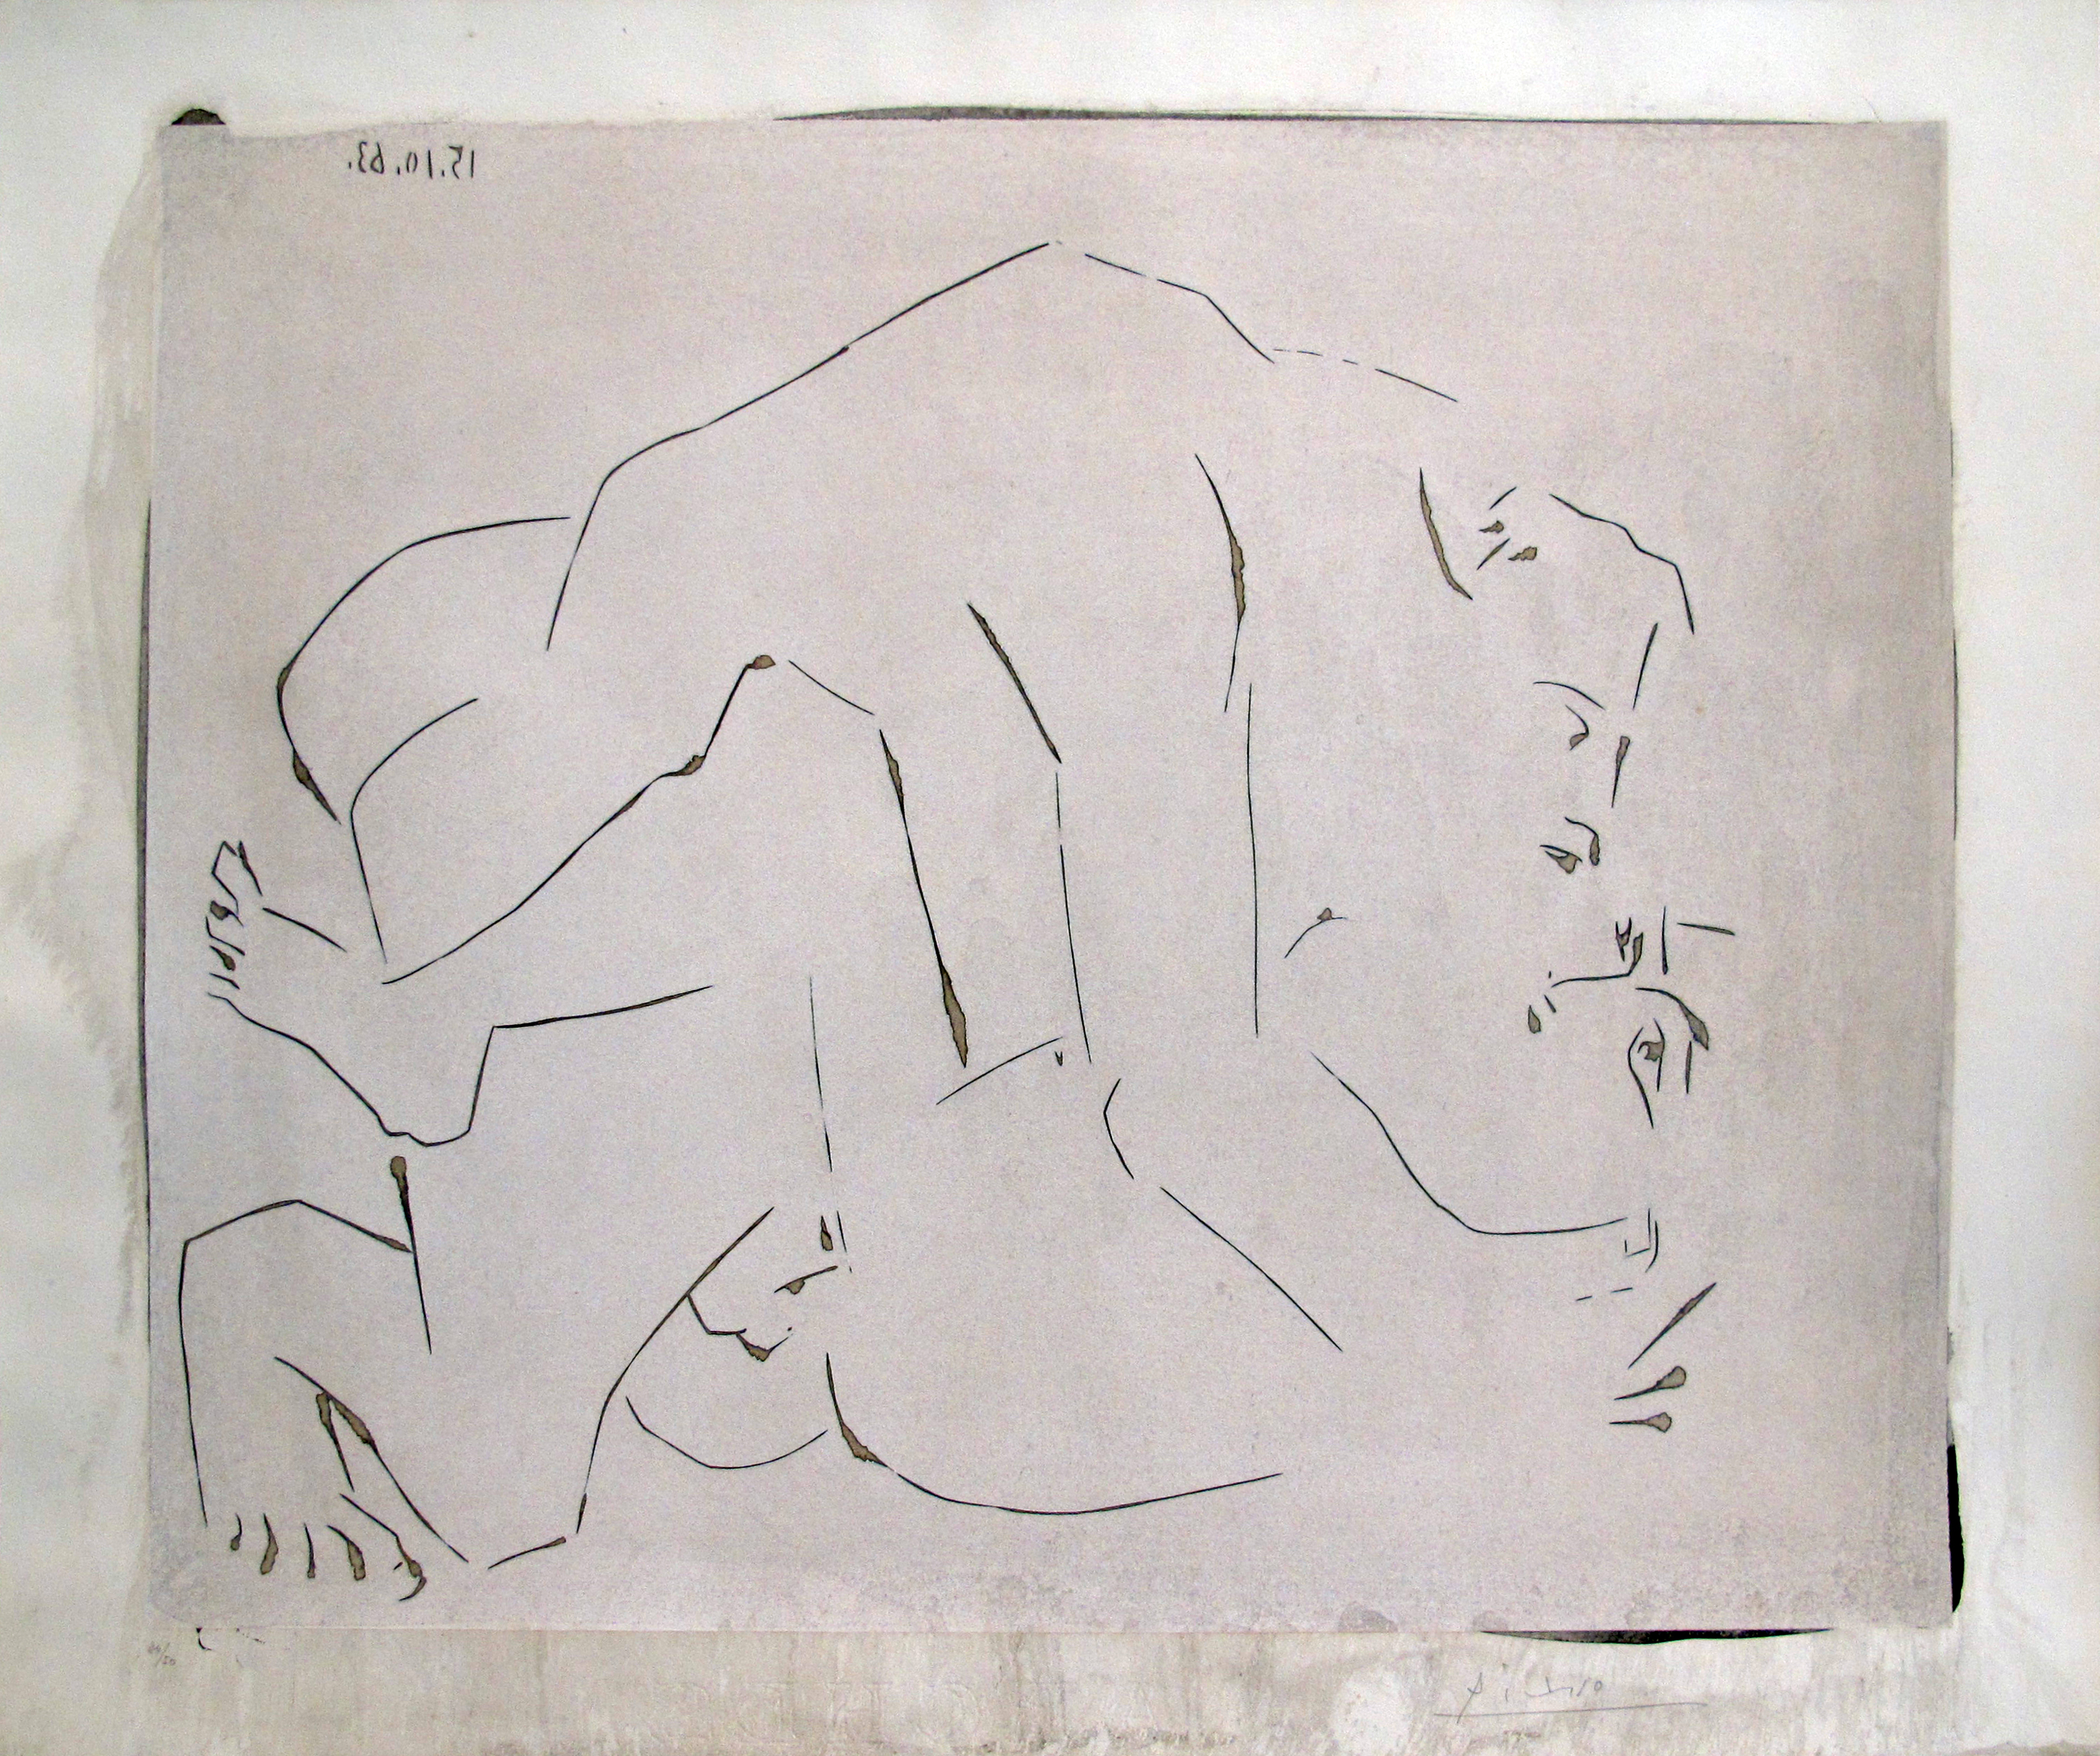 Pablo Picasso | L'Etreinte I | 1963 | Image of Artists' work.